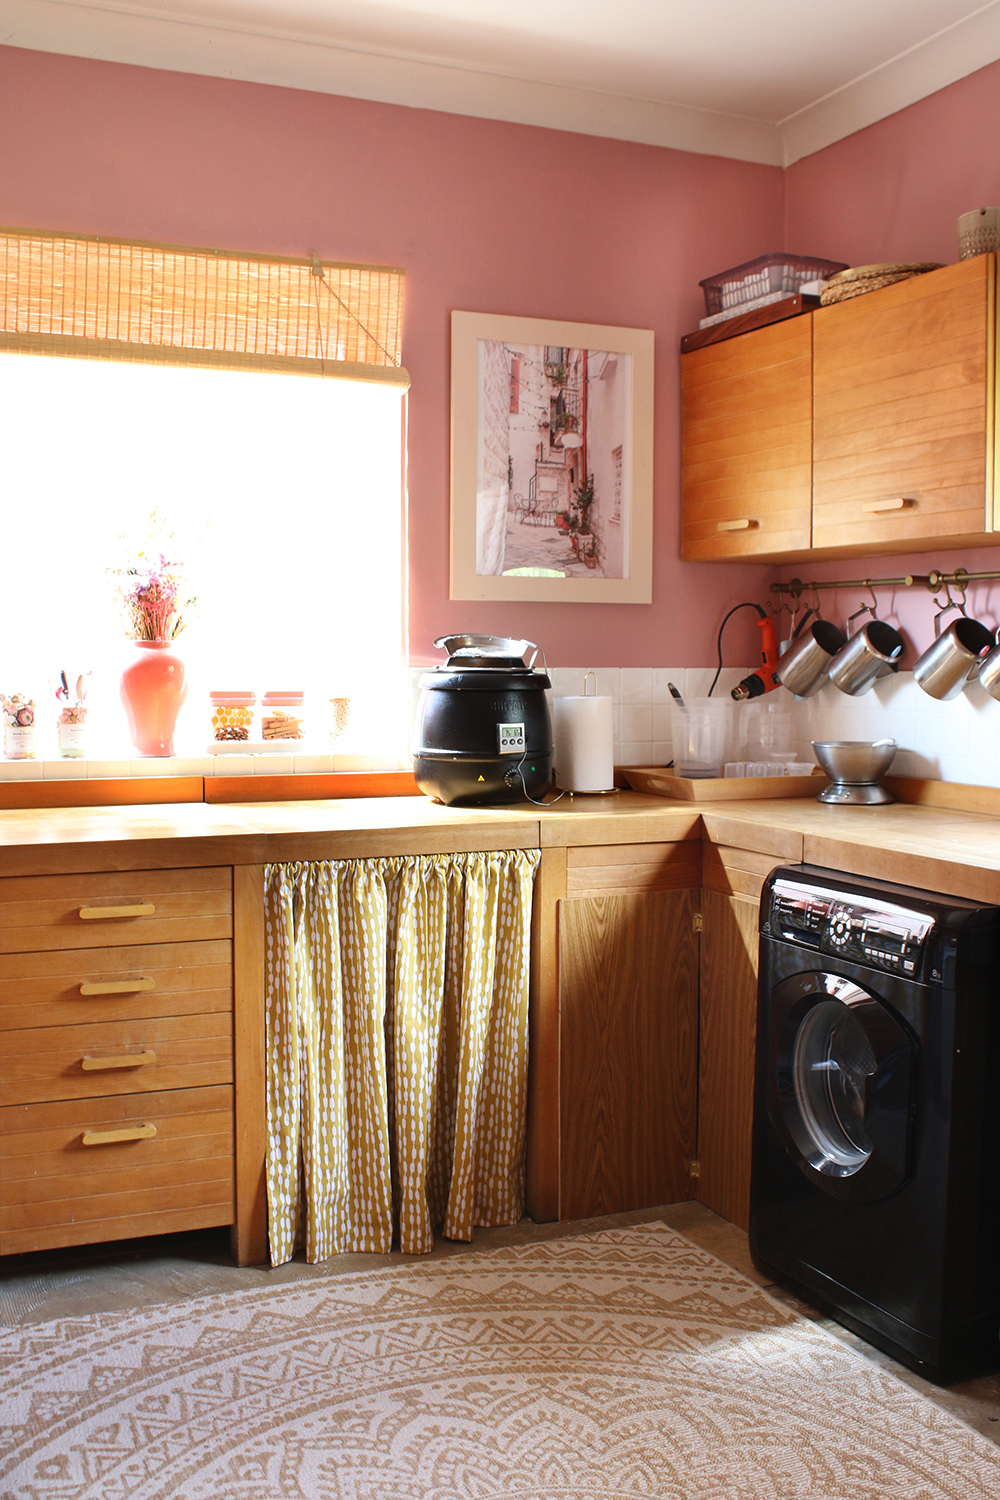 Budget Utility Room Refresh in pink and yellow